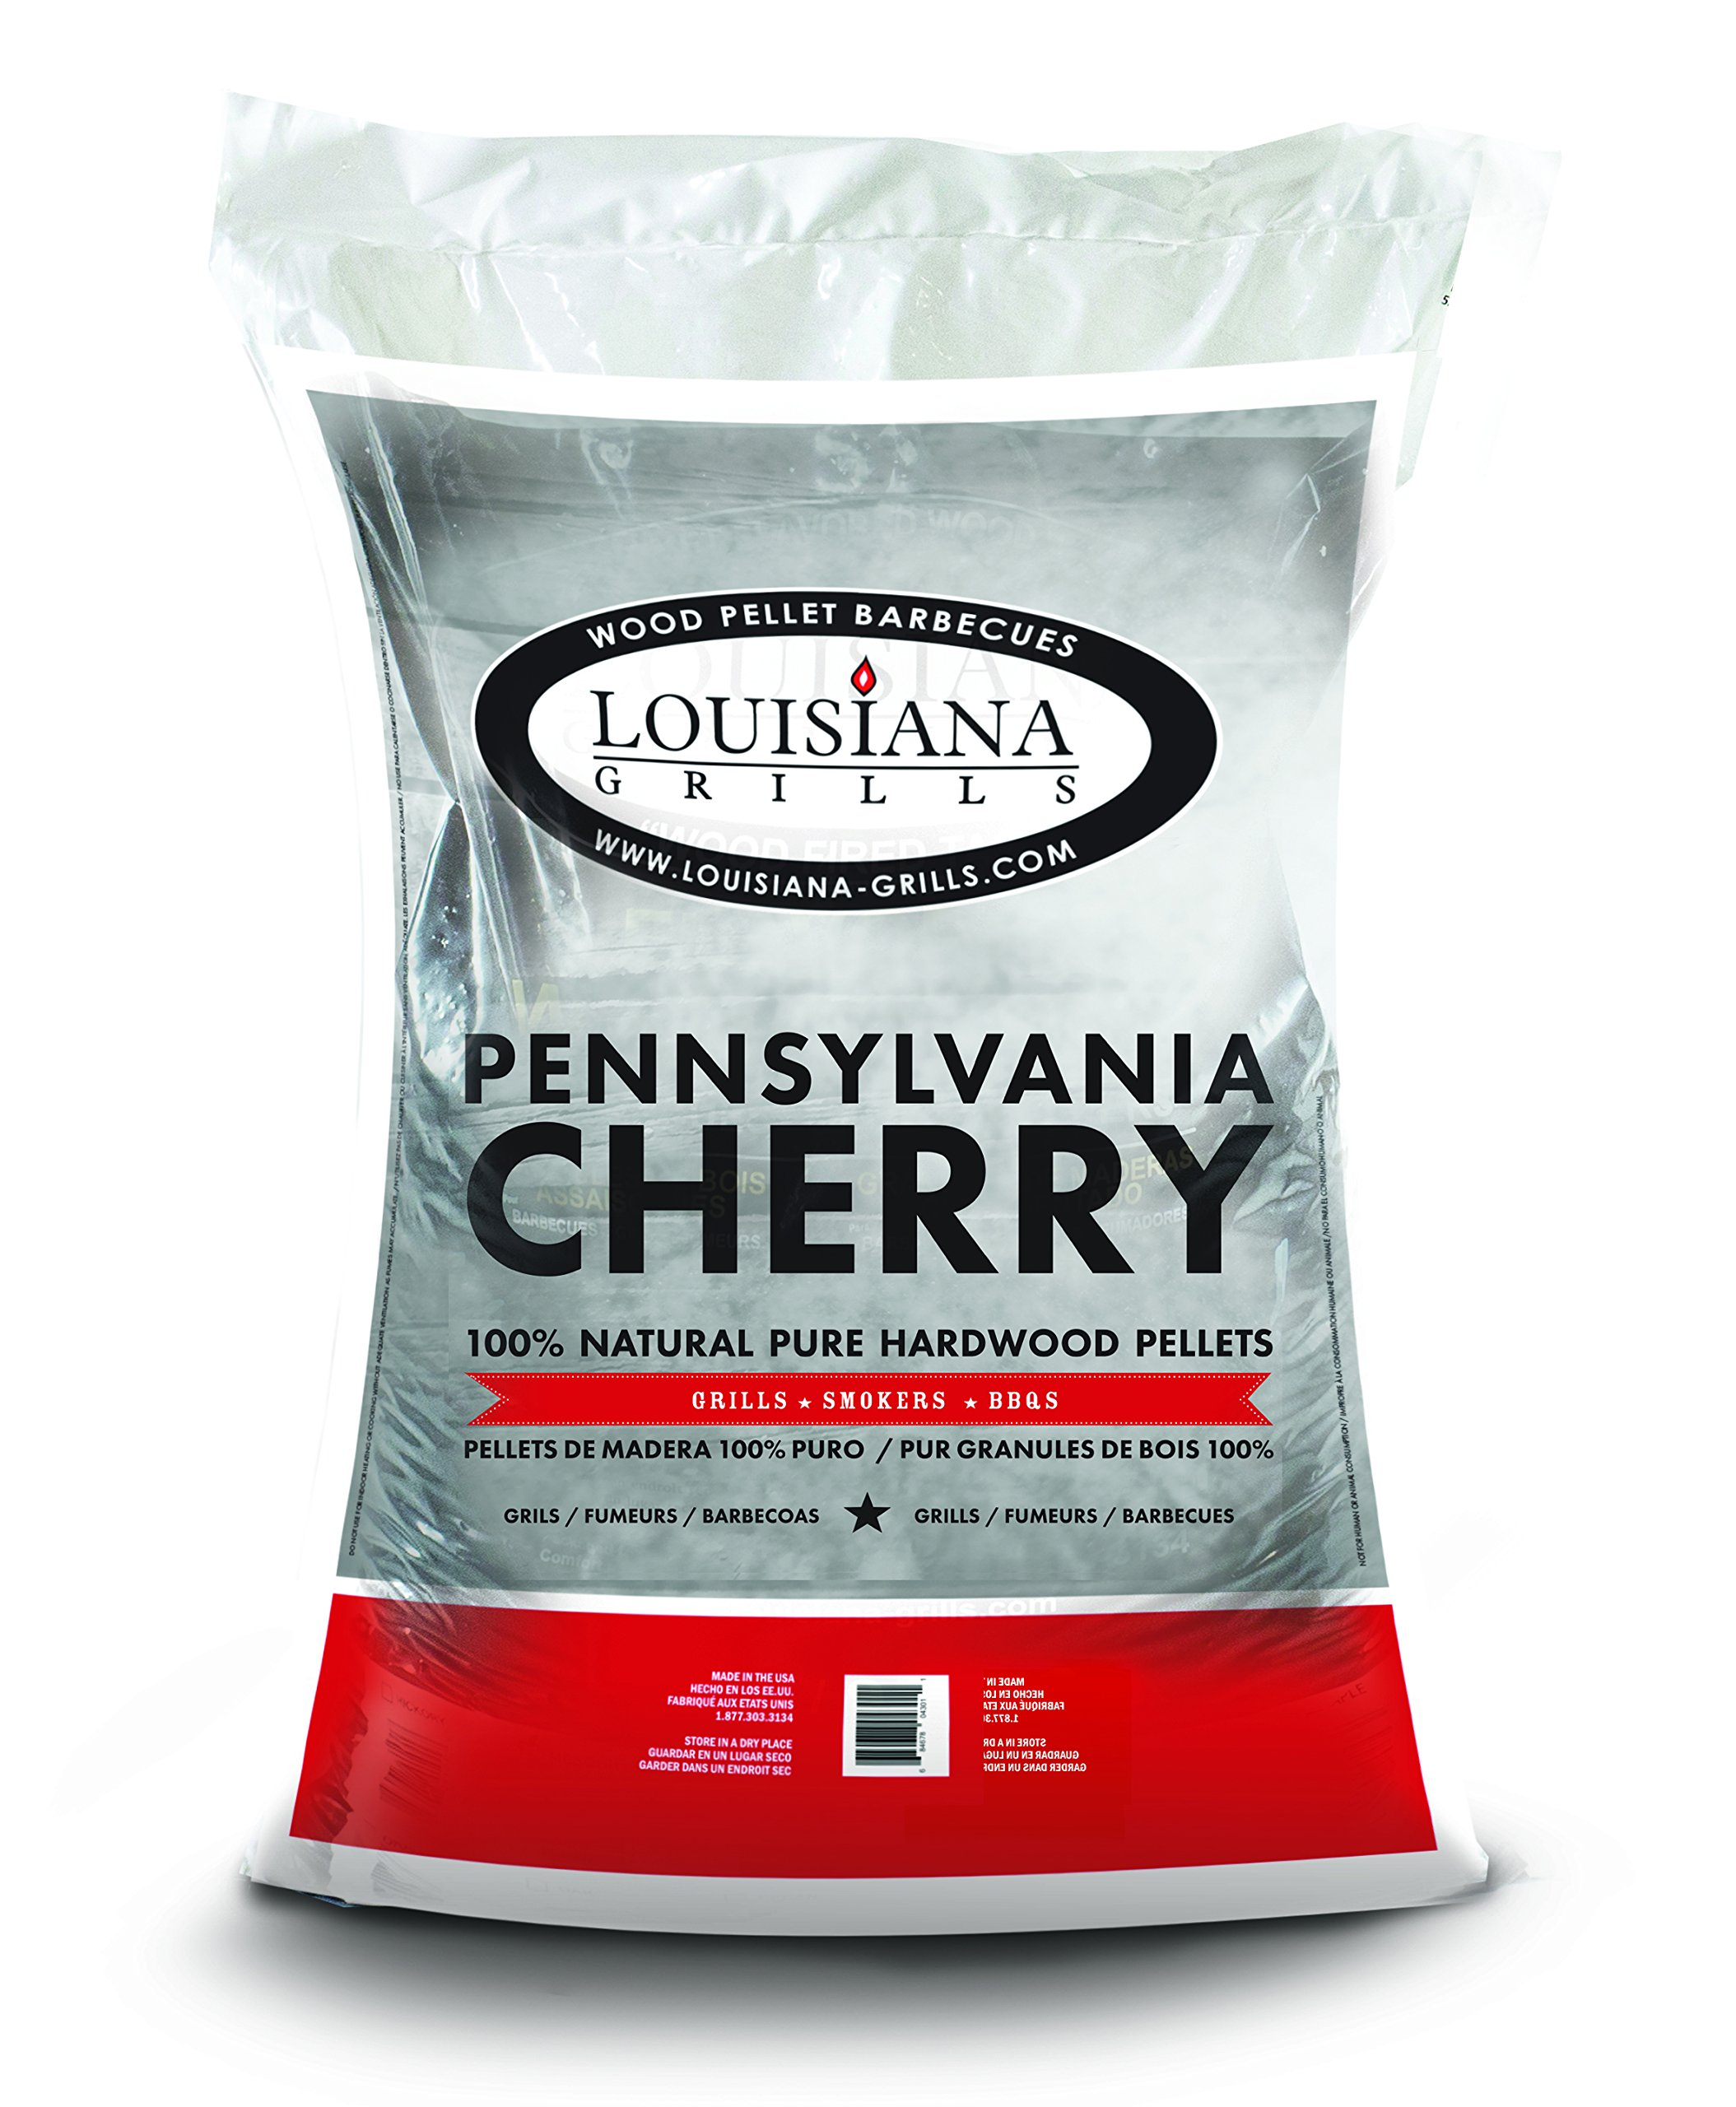 Louisiana Grills Pennsylvania Cherry 55404 Pellets, 40-Pound by Louisiana Grills